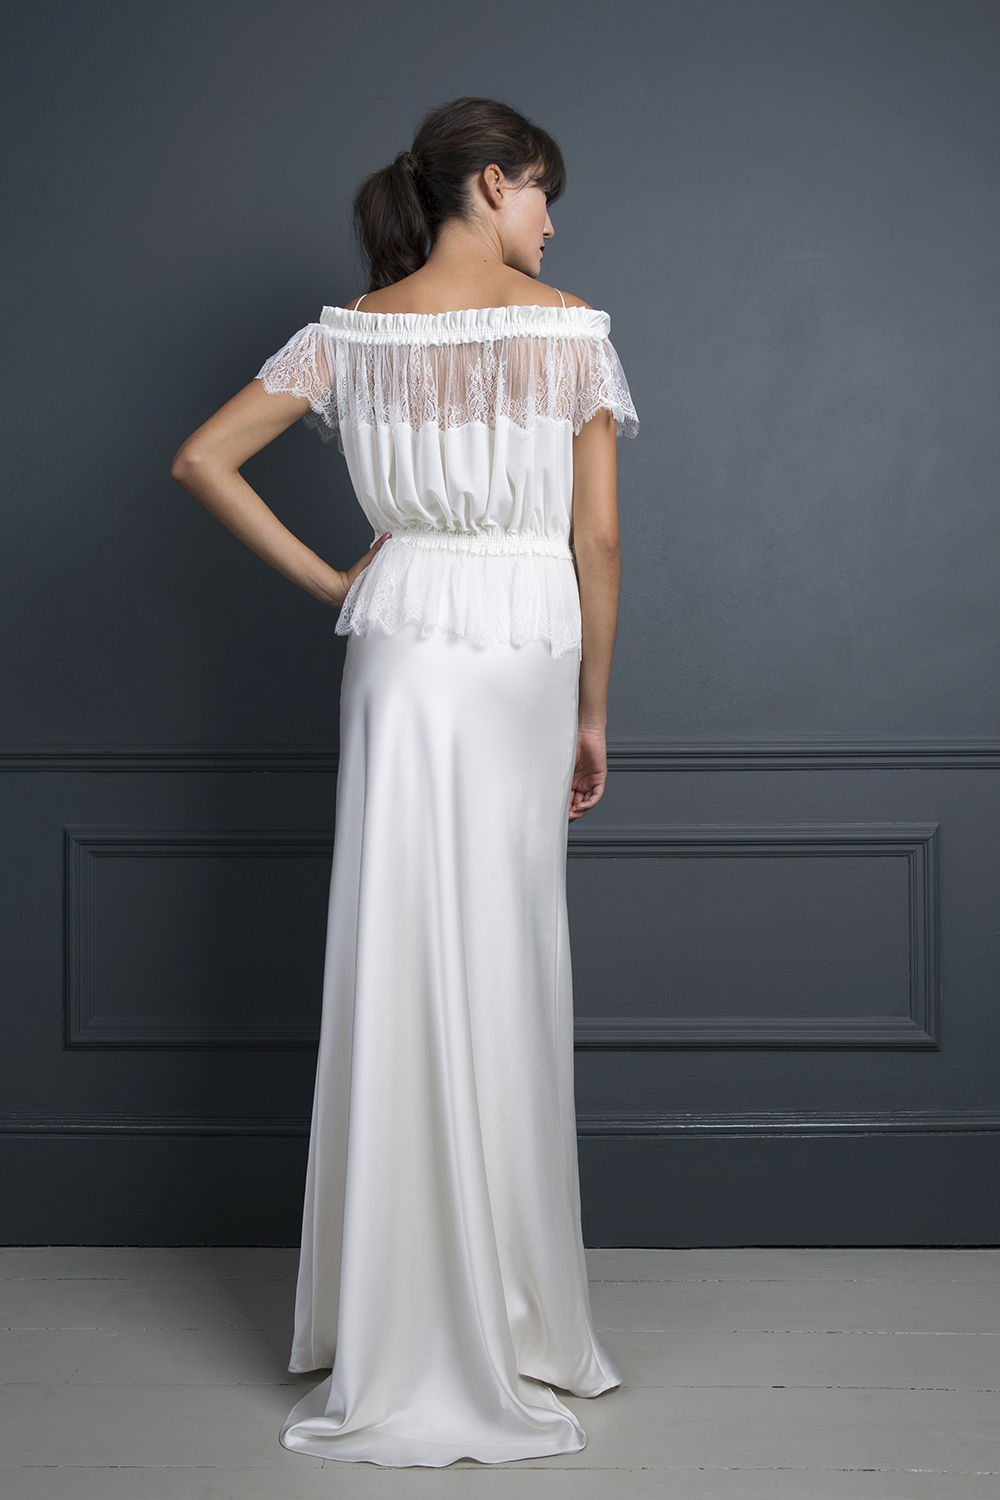 ALICE TOP & IRIS SLIP | A WEDDING DRESS BY HALFPENNY LONDON